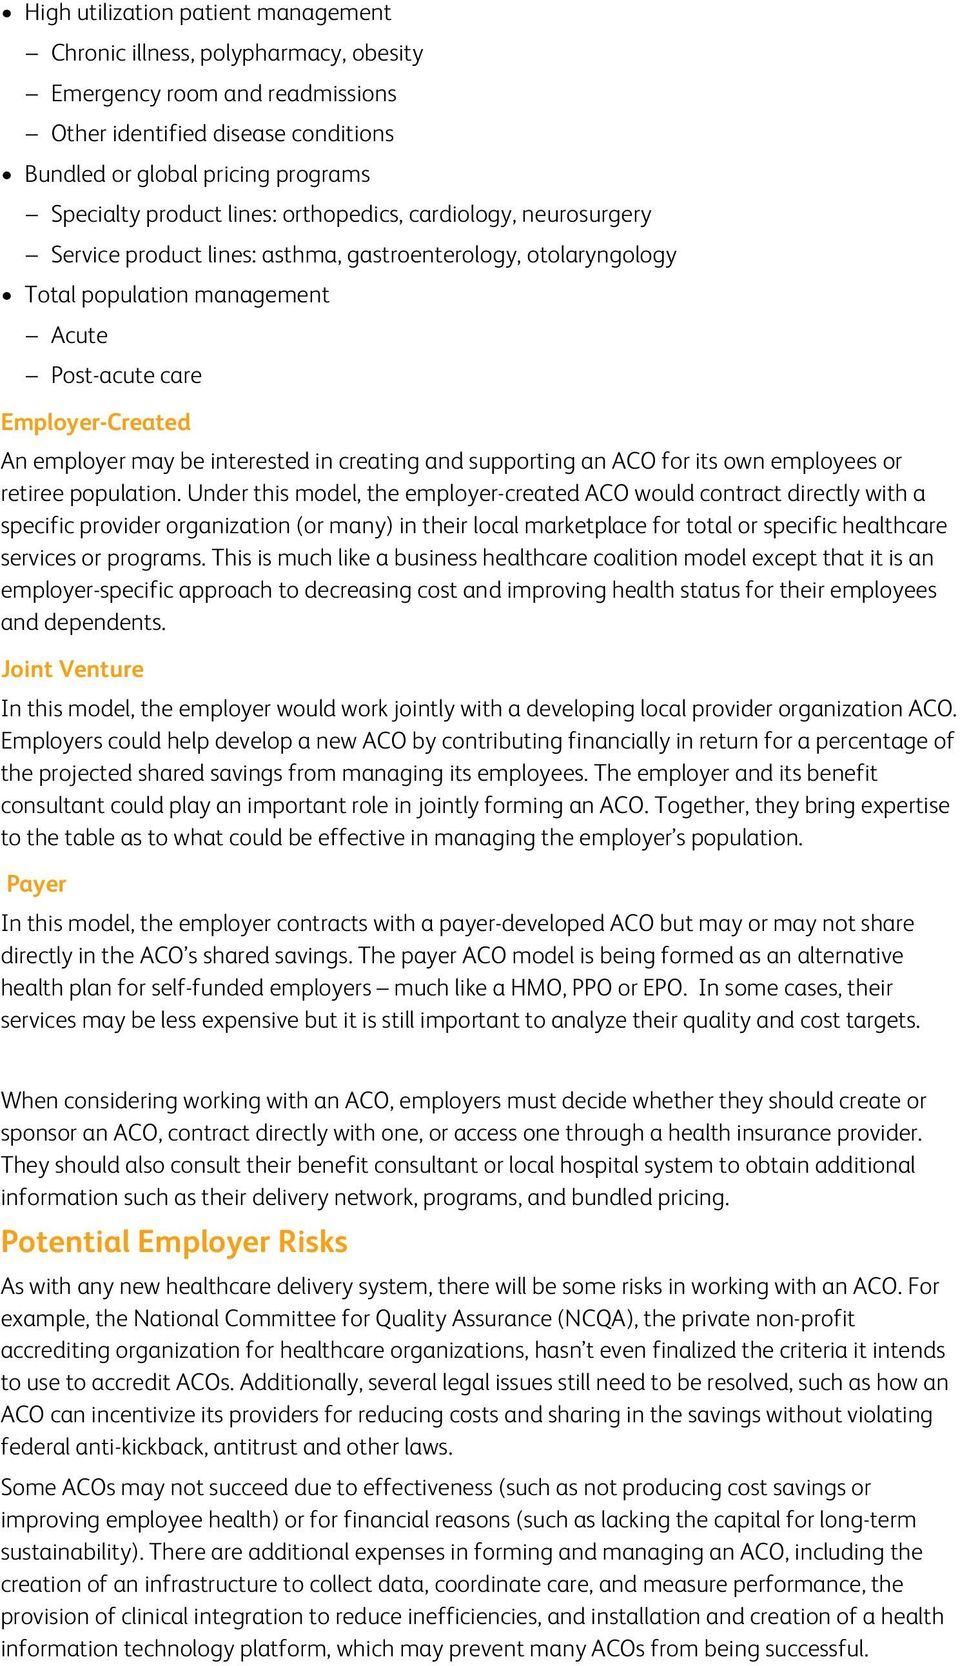 interested in creating and supporting an ACO for its own employees or retiree population.